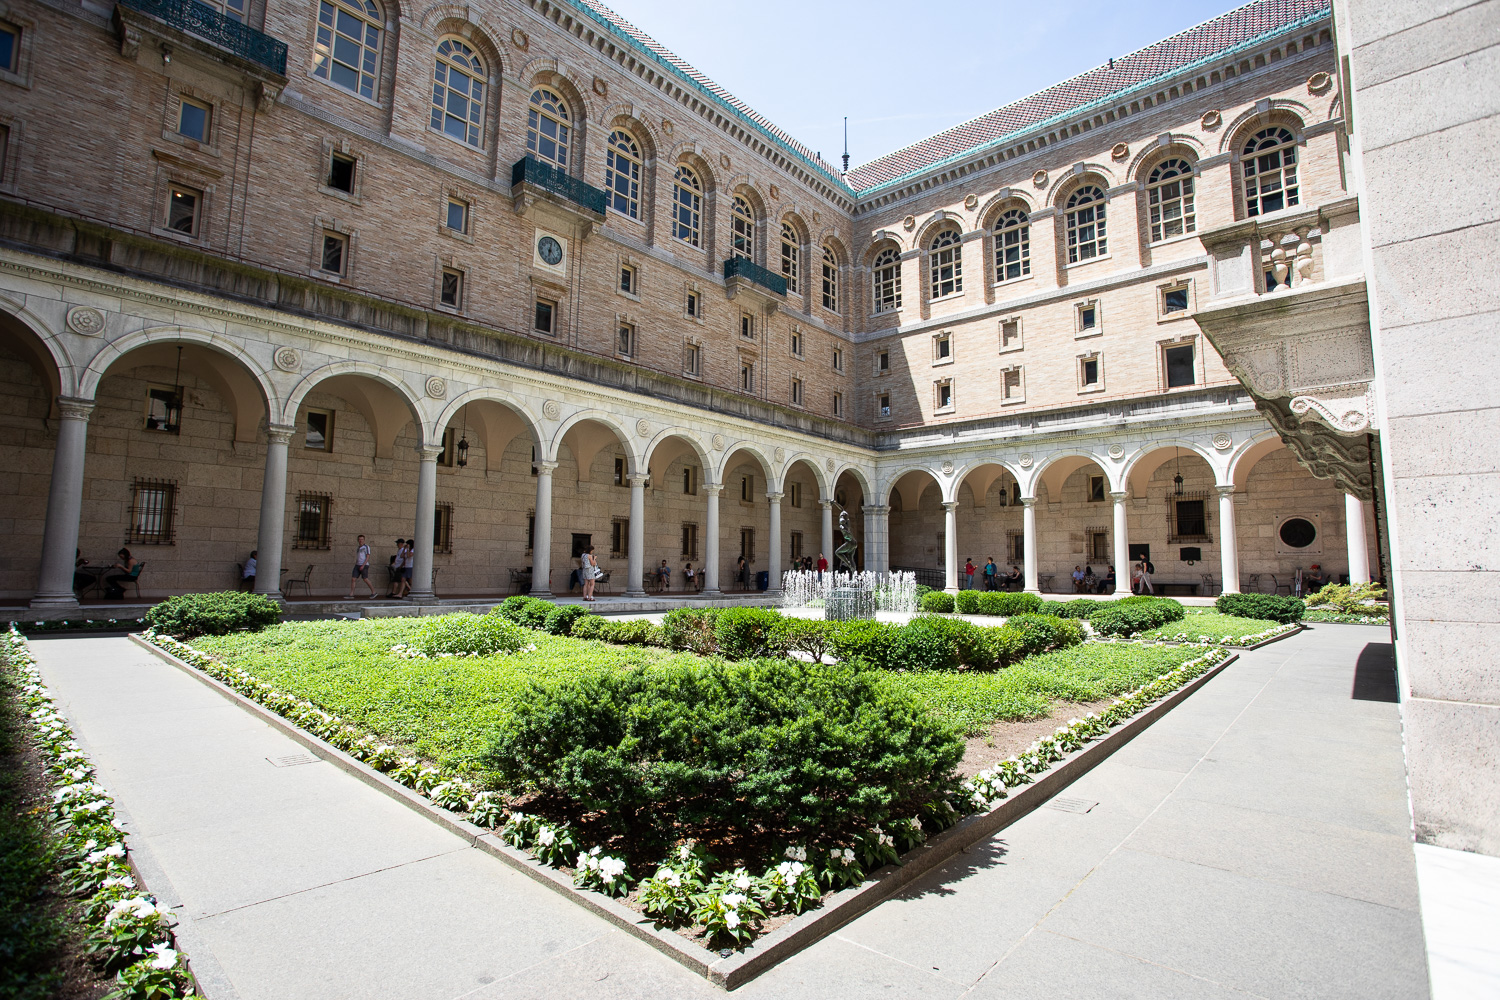 Open-air courtyard at the Boston Public Library.